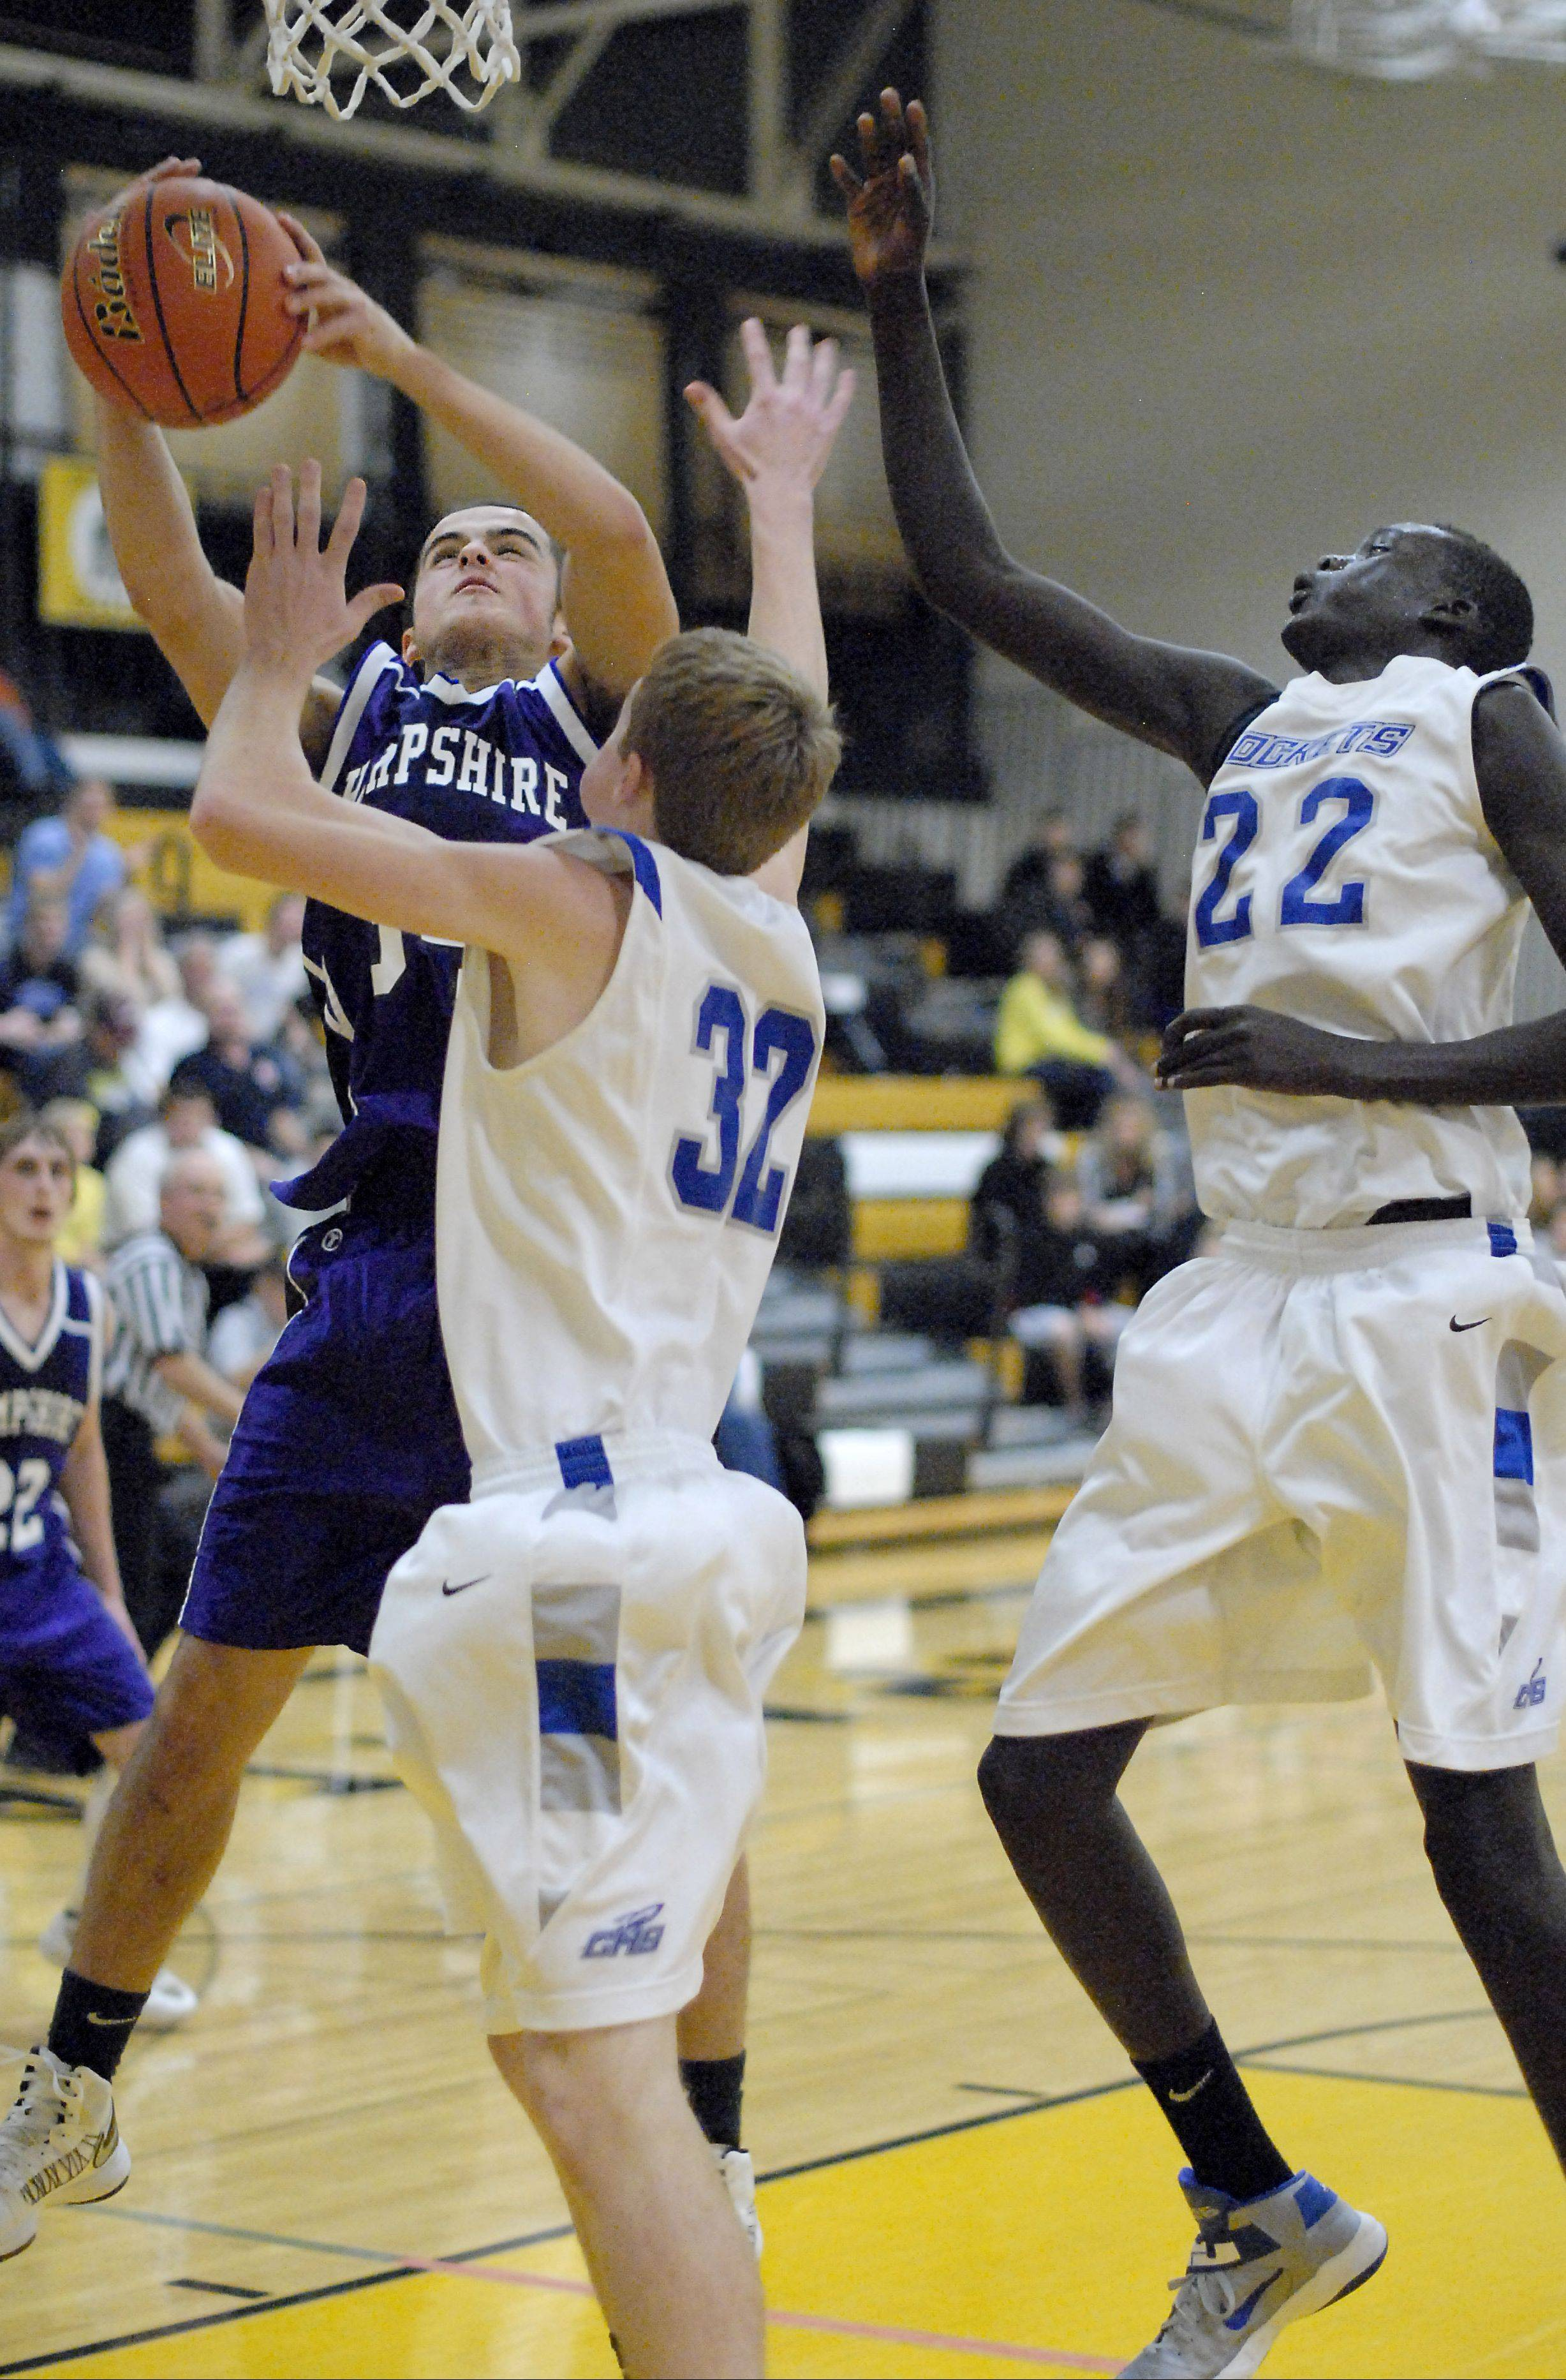 Hampshire's Michael Dumoulin grabs a rebound from Burlington Central's Sean Fitzgerald and Moter Deng in the second quarter of the Sycamore tournament on Wednesday.